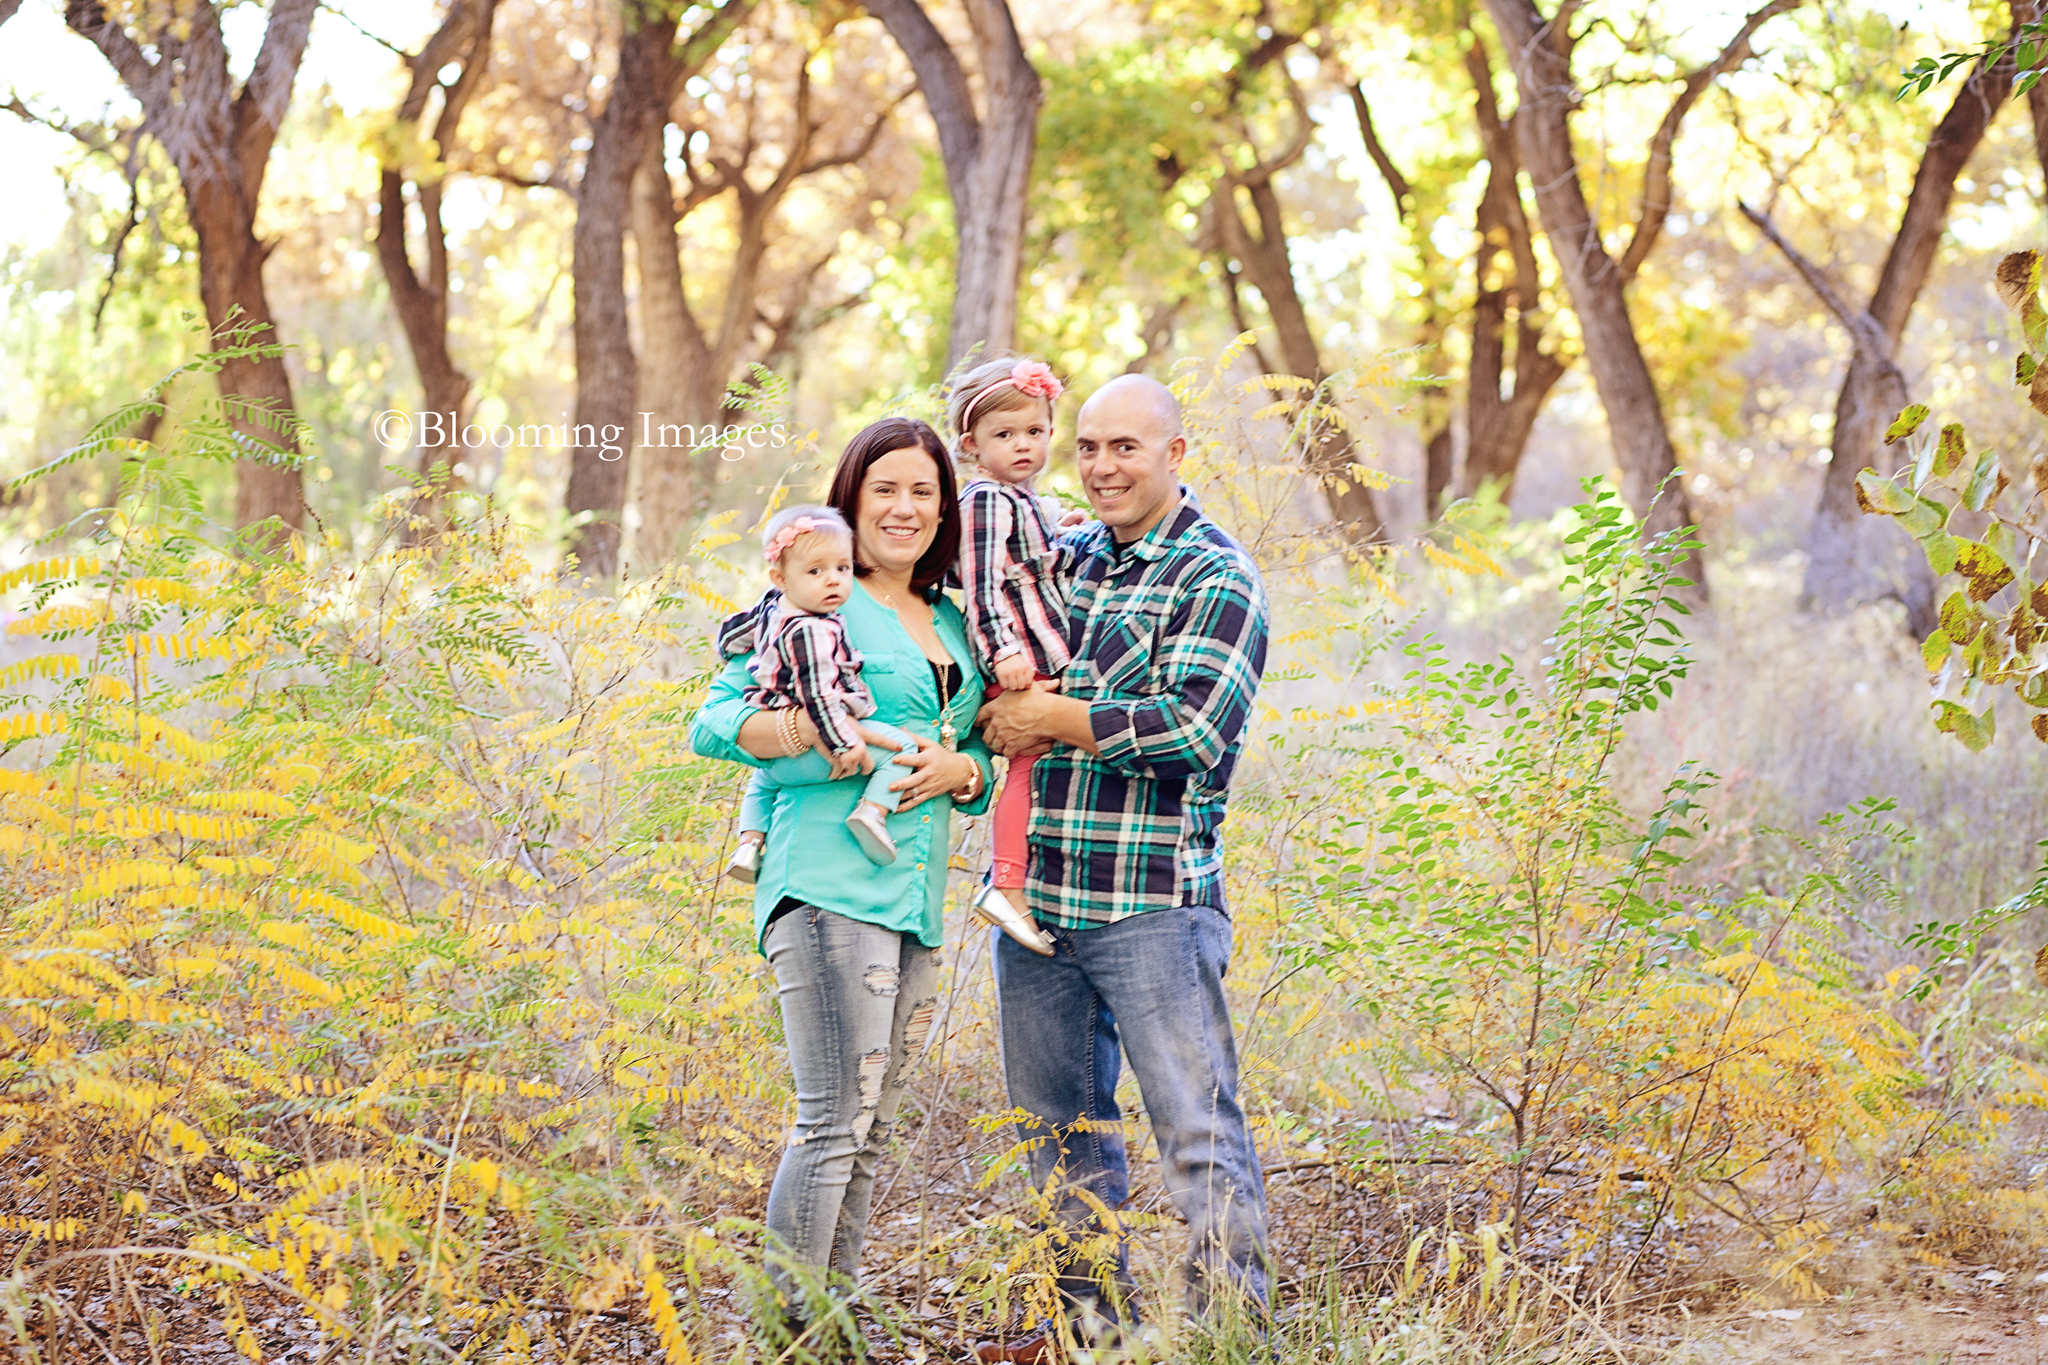 Albuquerque Family Photographer, Albuquerque Family Photographers, Family Photographers in Albuquerque, Rio Rancho Family Photographer, Corrales Family Photographers, New Mexico Family Photographers